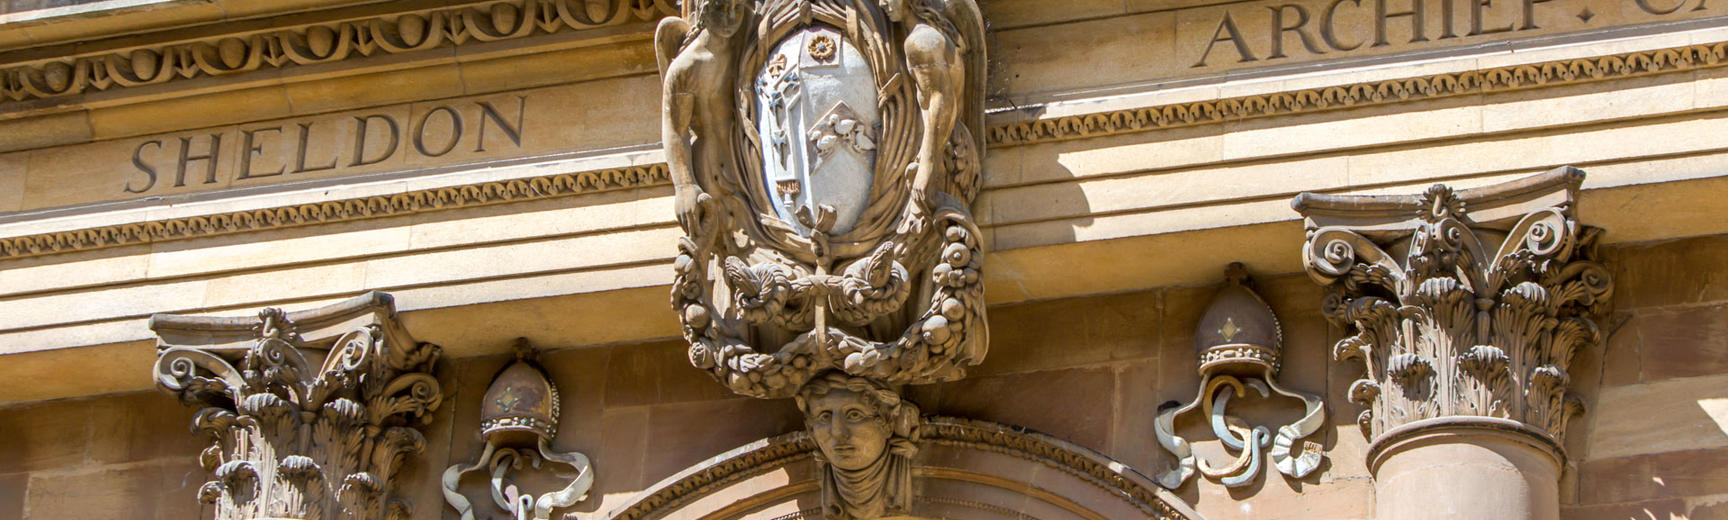 Image of external detailing above a window of the Sheldonian Theatre